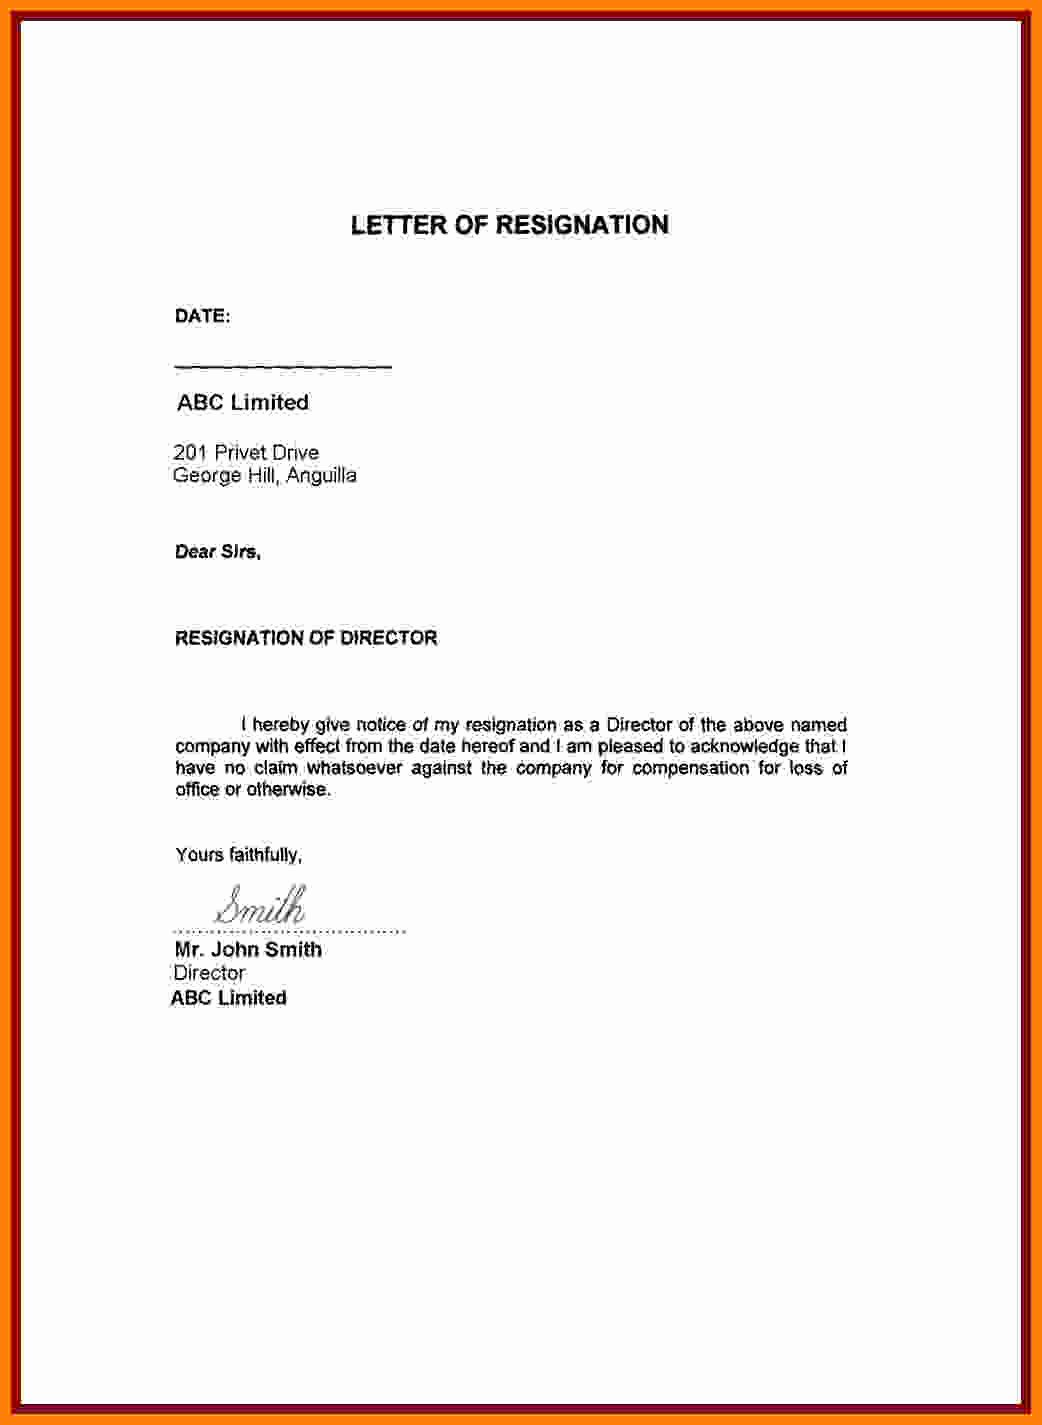 Resignation Letter for Personal Reasons Fresh 6 Simple Resignation Letter Sample for Personal Reasons